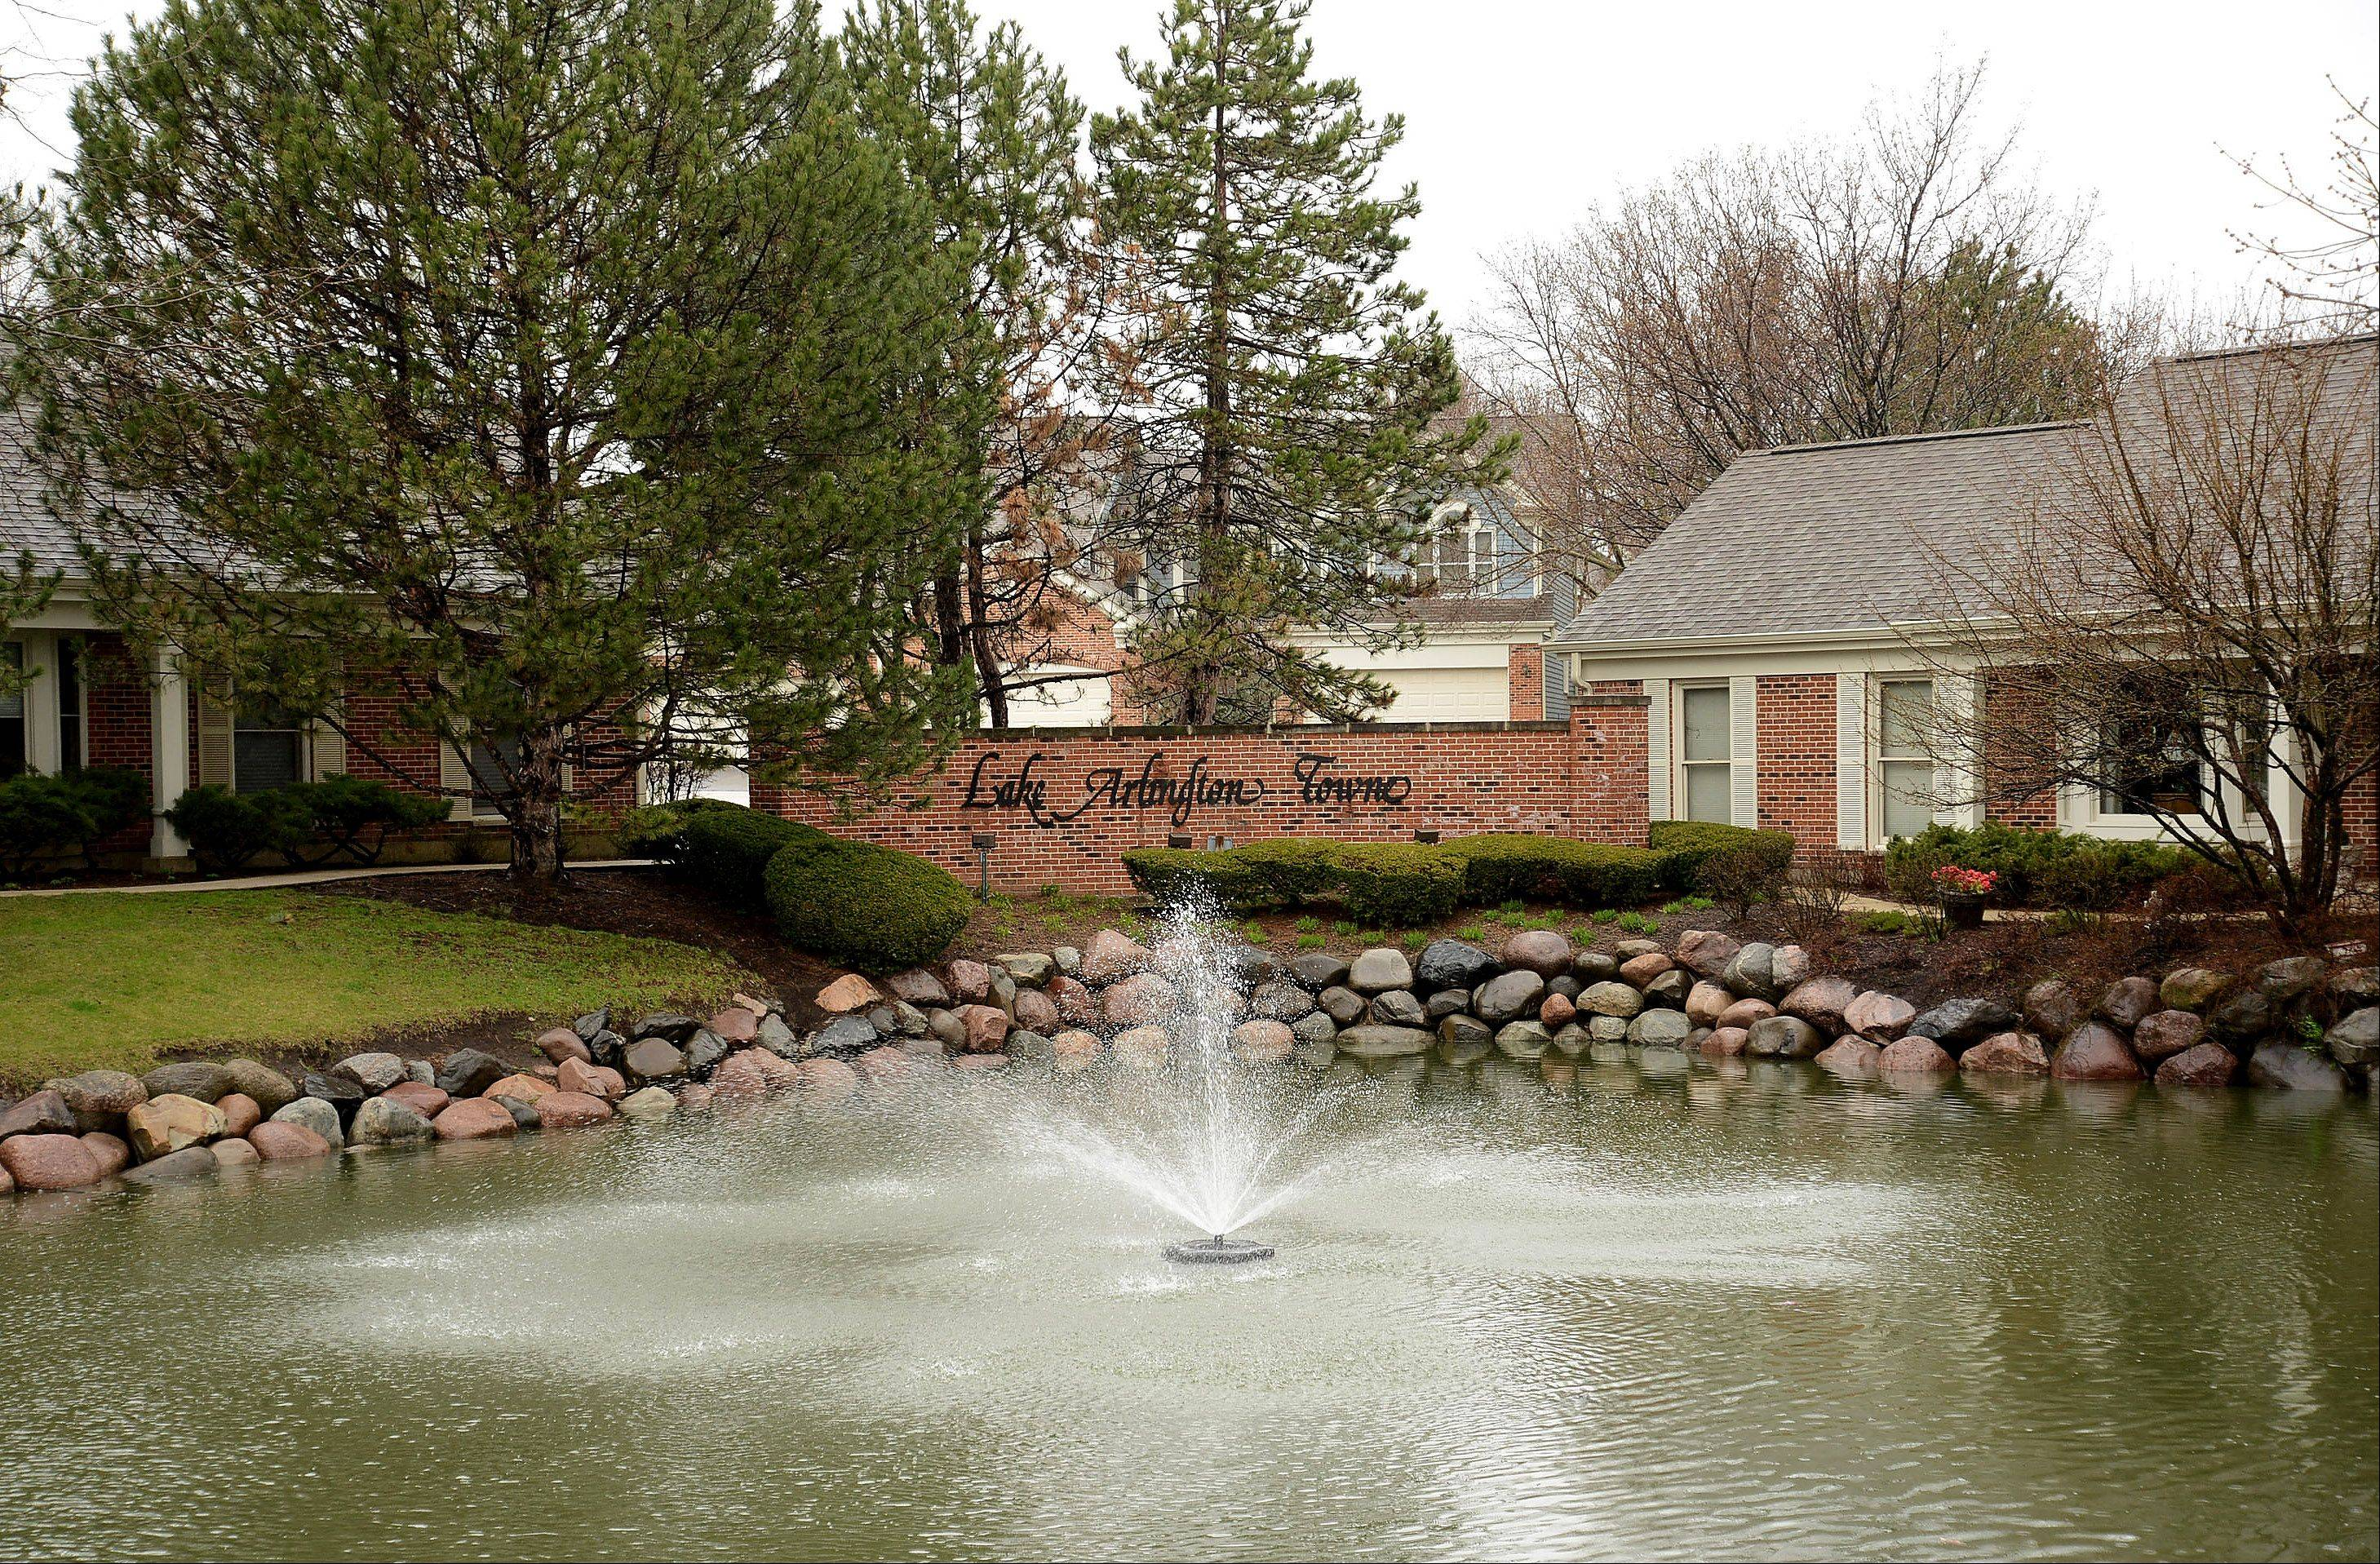 The Lake Arlington neighborhood offers a mix of townhouses and single-family homes.